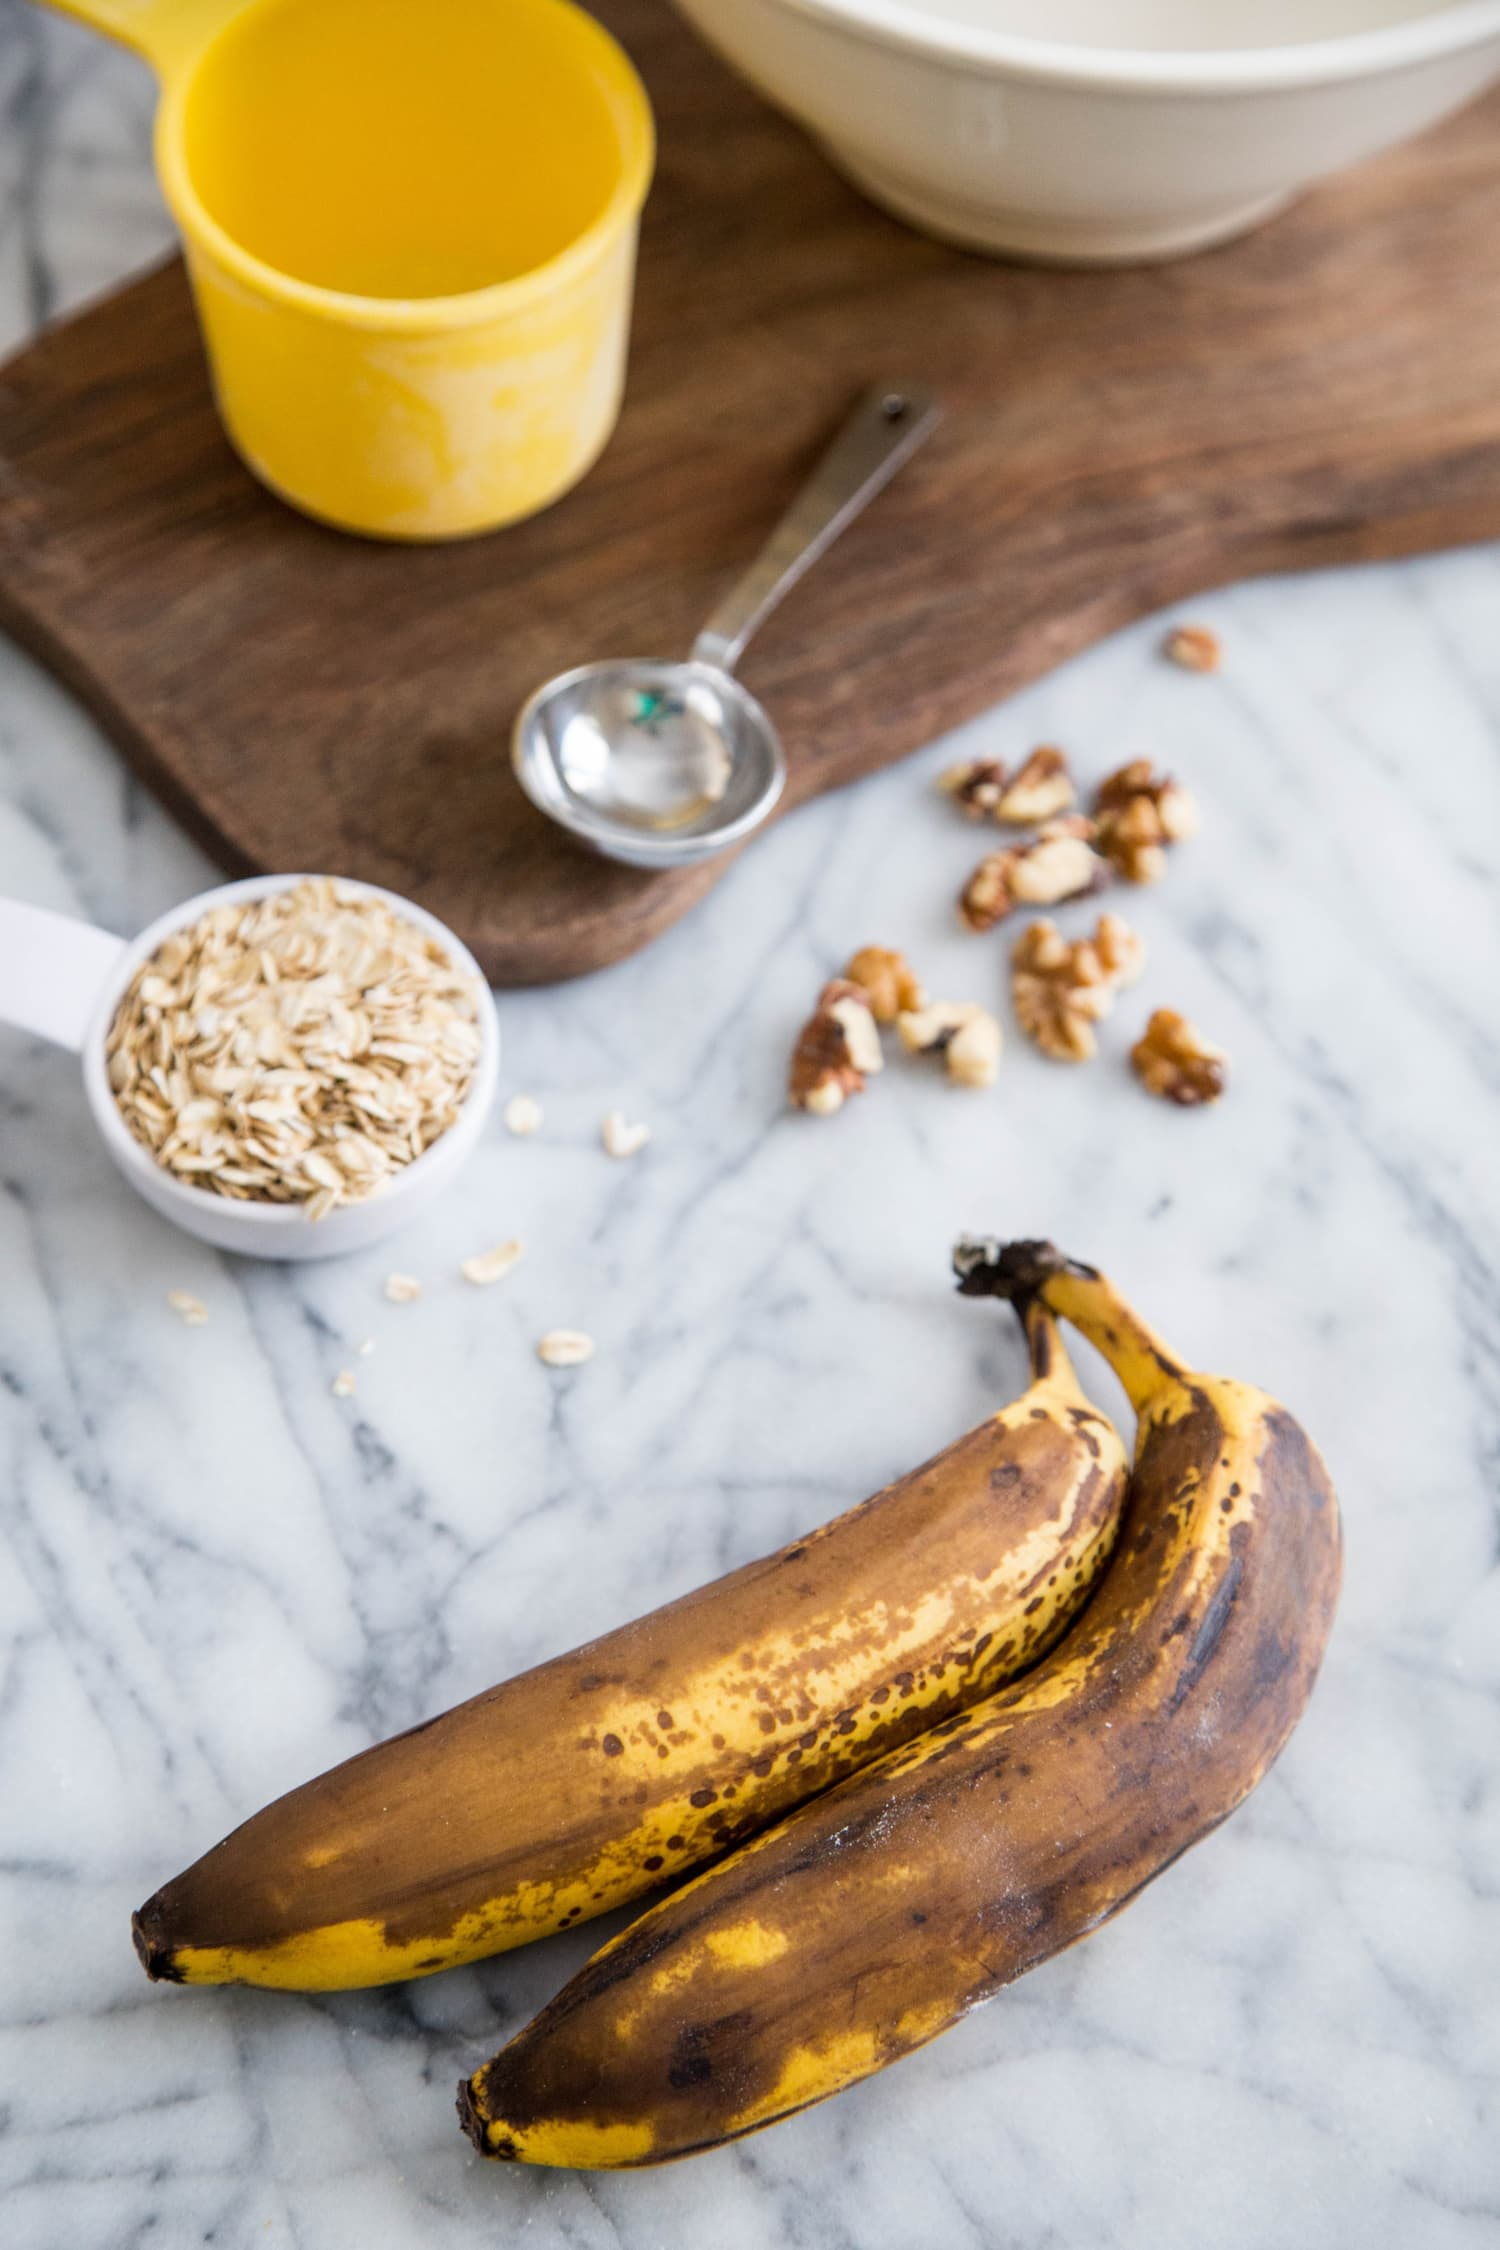 The 6 Most Delicious Ways to Use Up Overripe Bananas